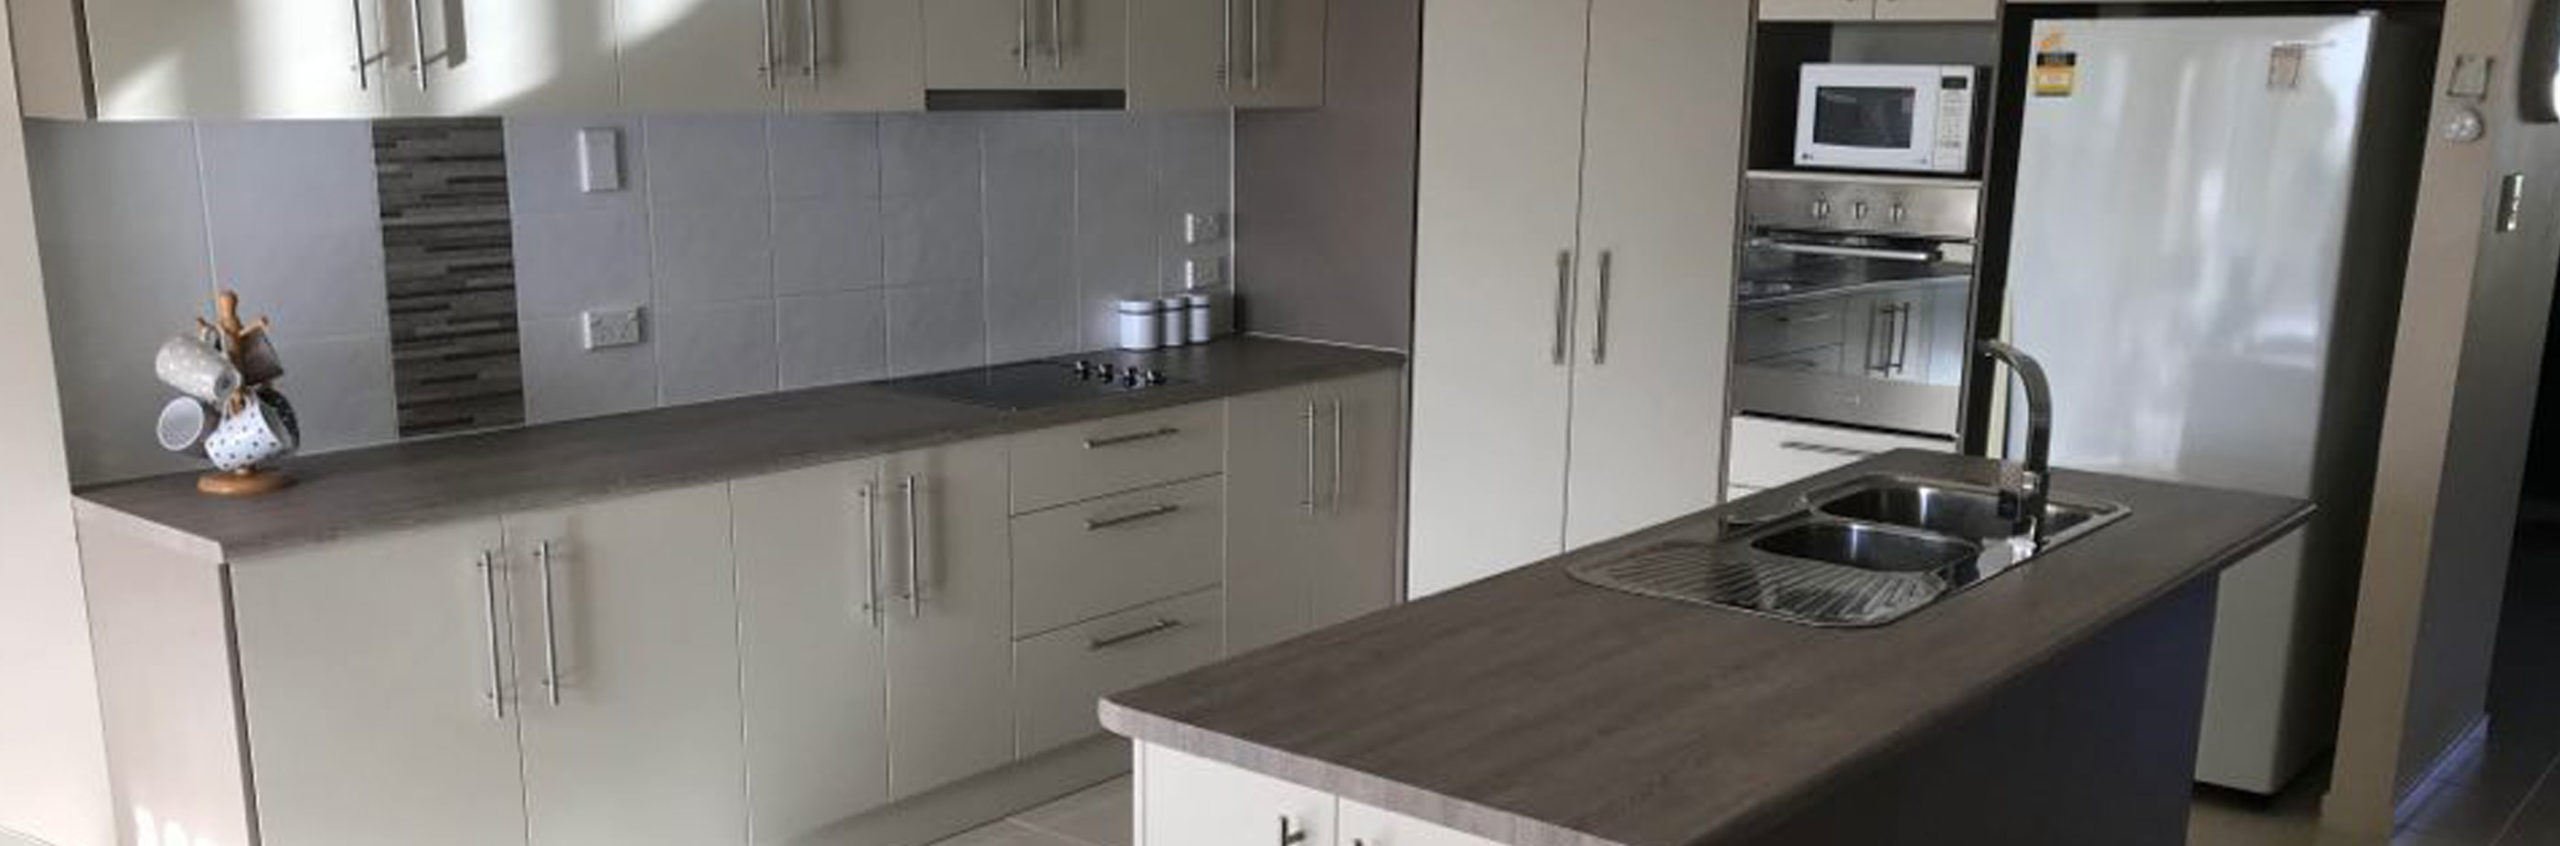 dream-kitchen-renovations-southport-renogurus